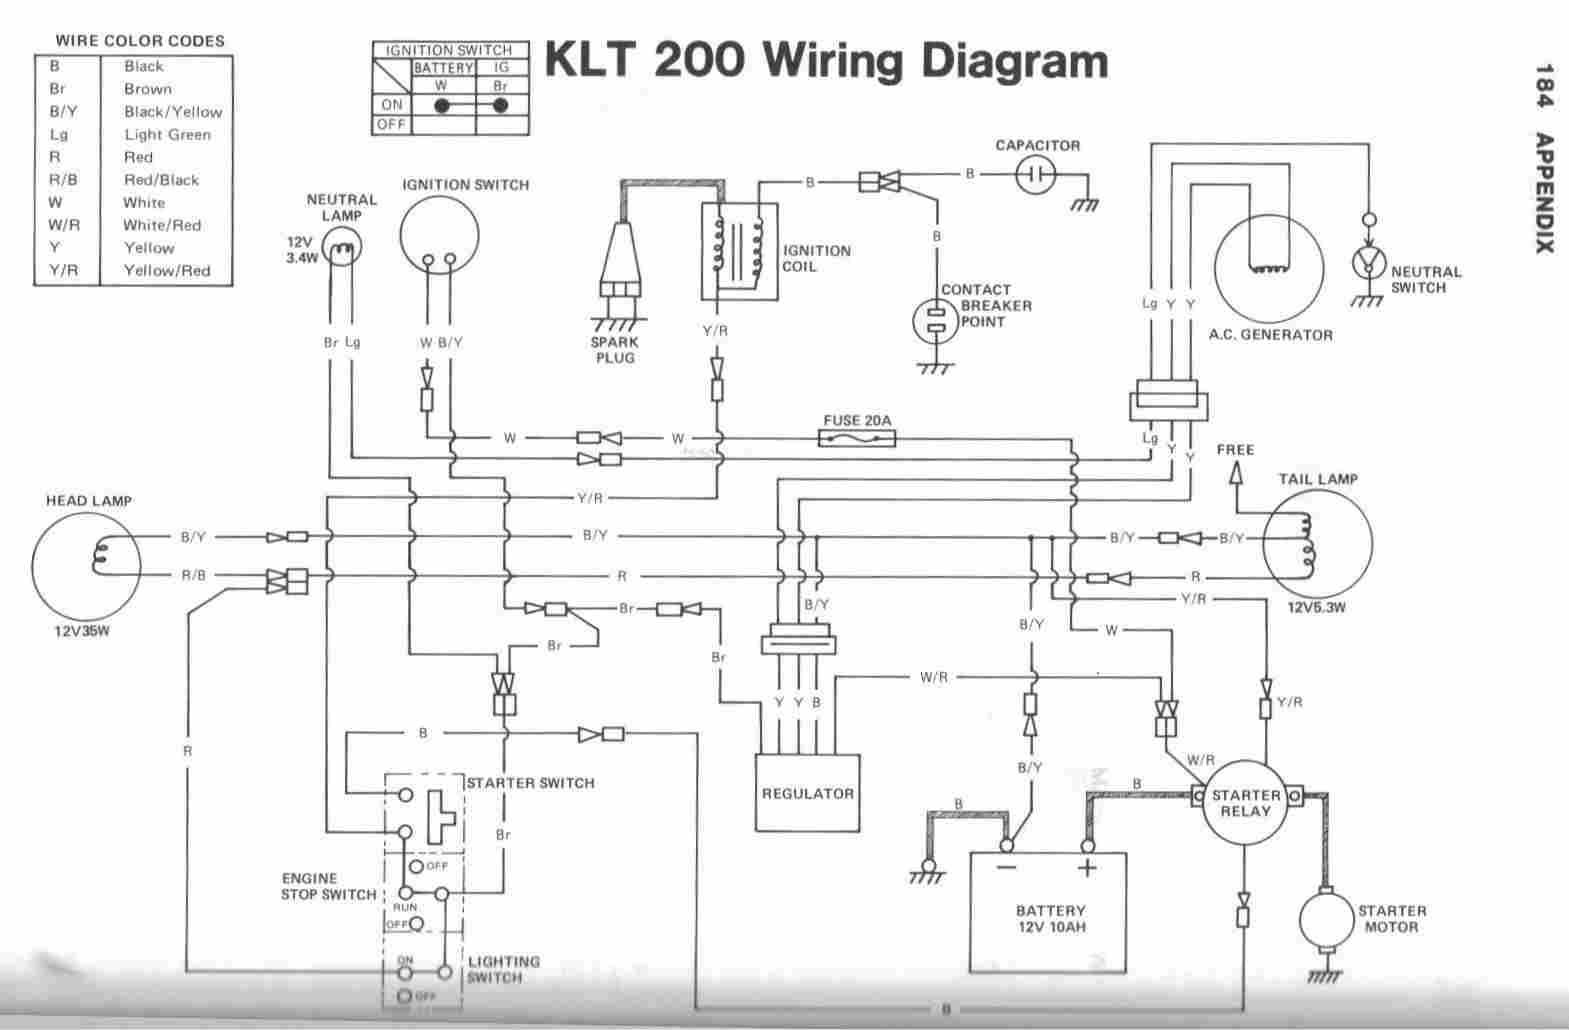 2869034594ce054a636782e5c44b61b4 residential electrical wiring diagrams pdf easy routing cool home electrical wiring diagrams at virtualis.co